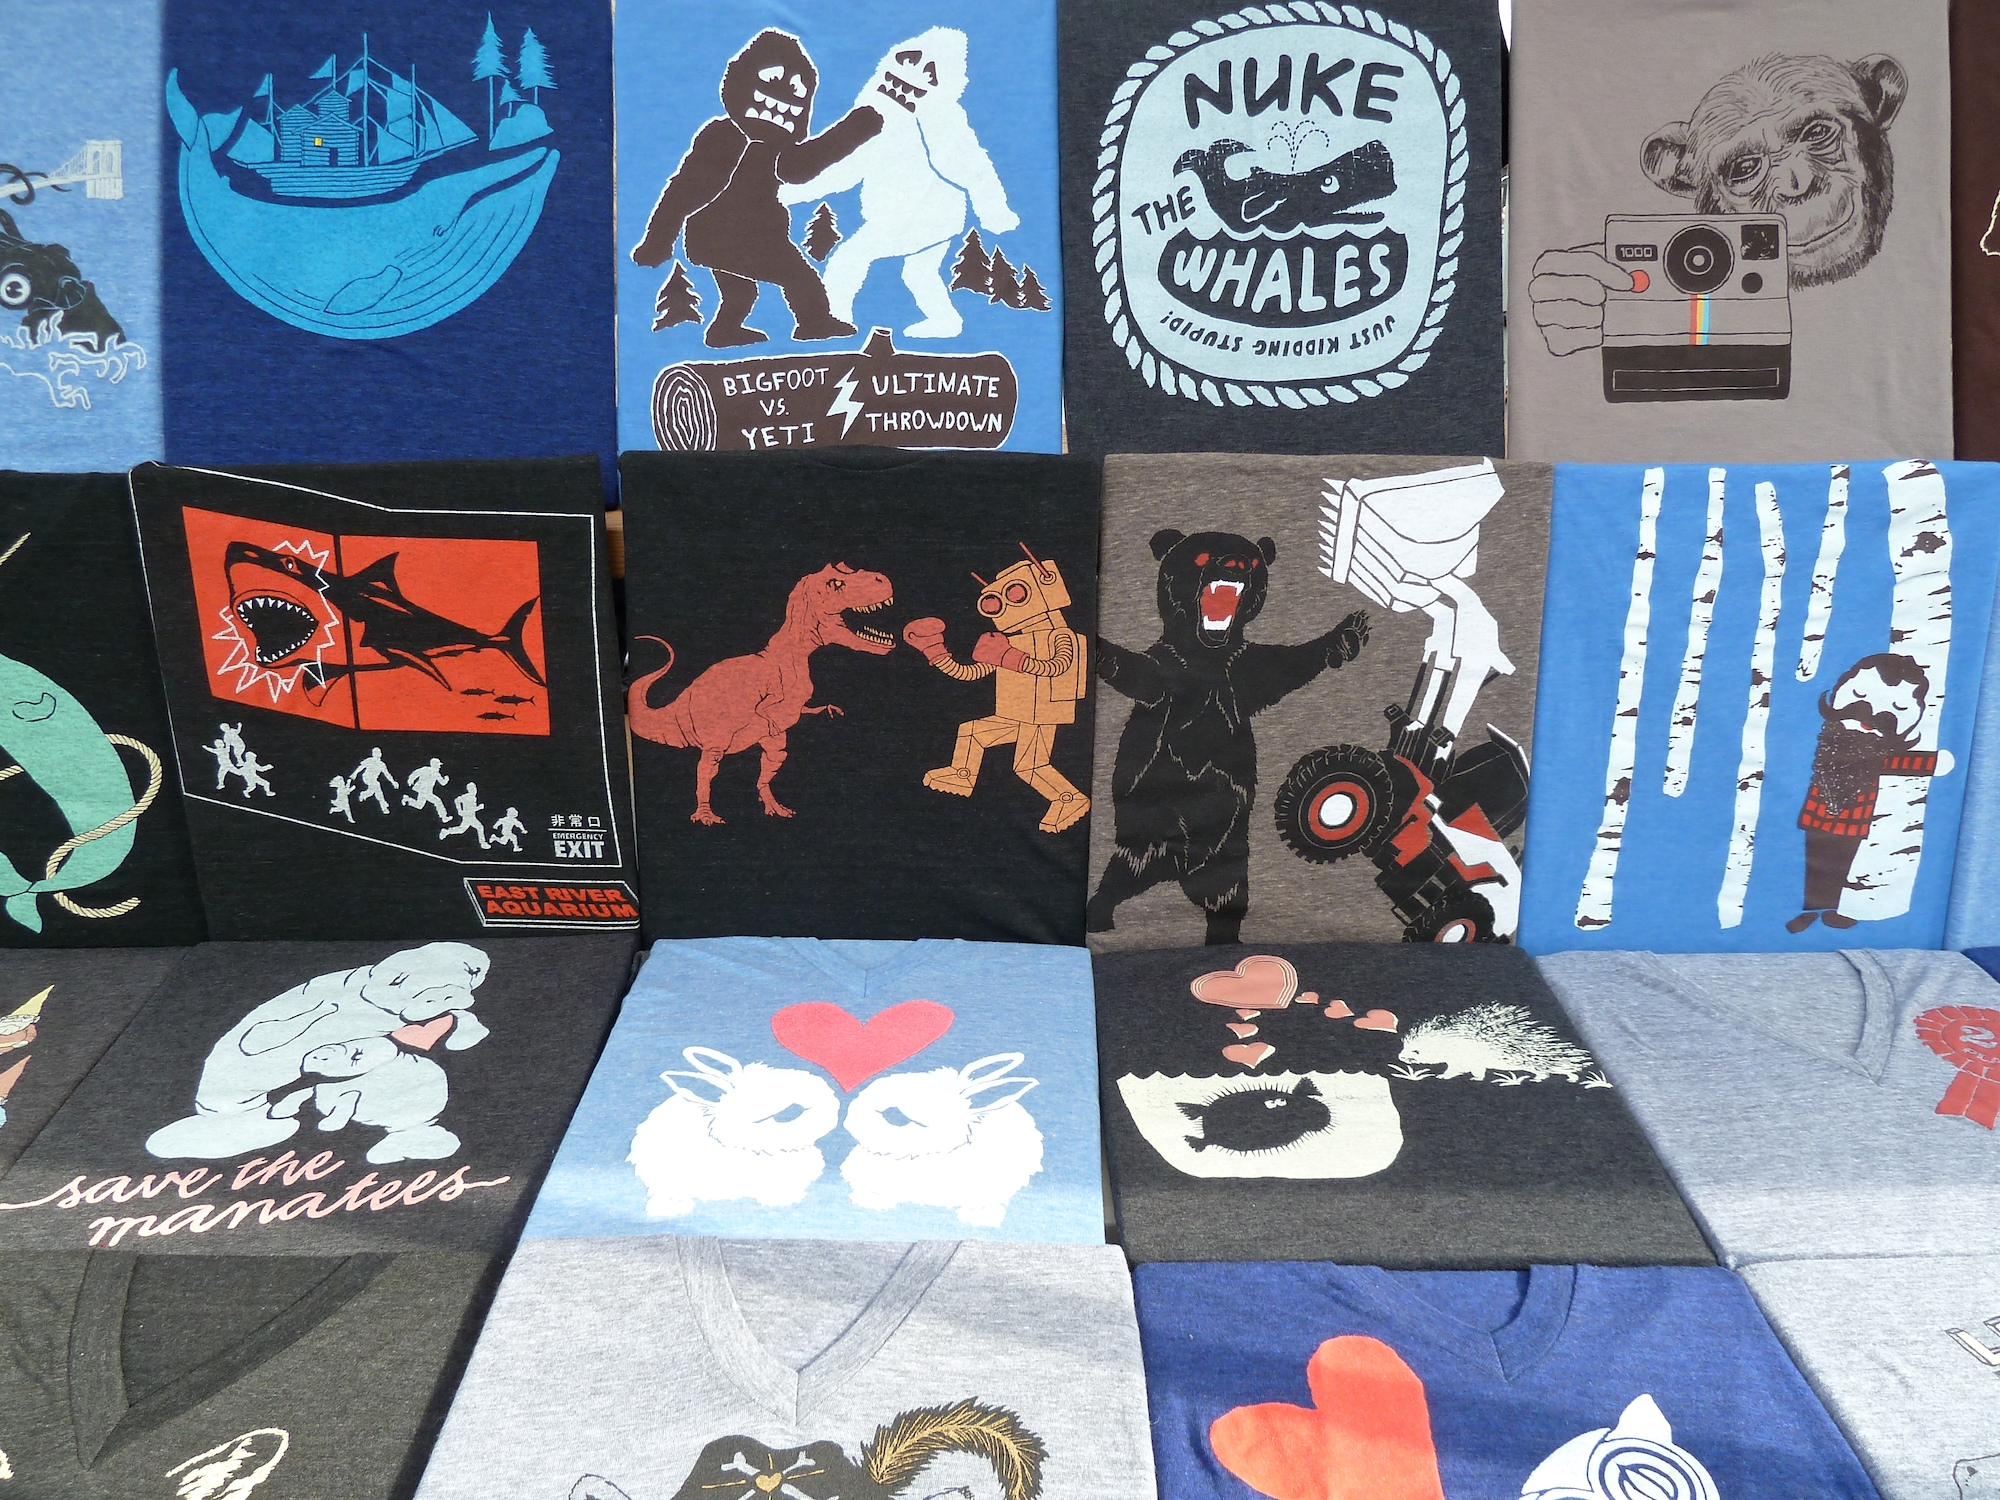 Cool T-Shirts from Gnome Enterprises for kids and adults at Brooklyn Flea market